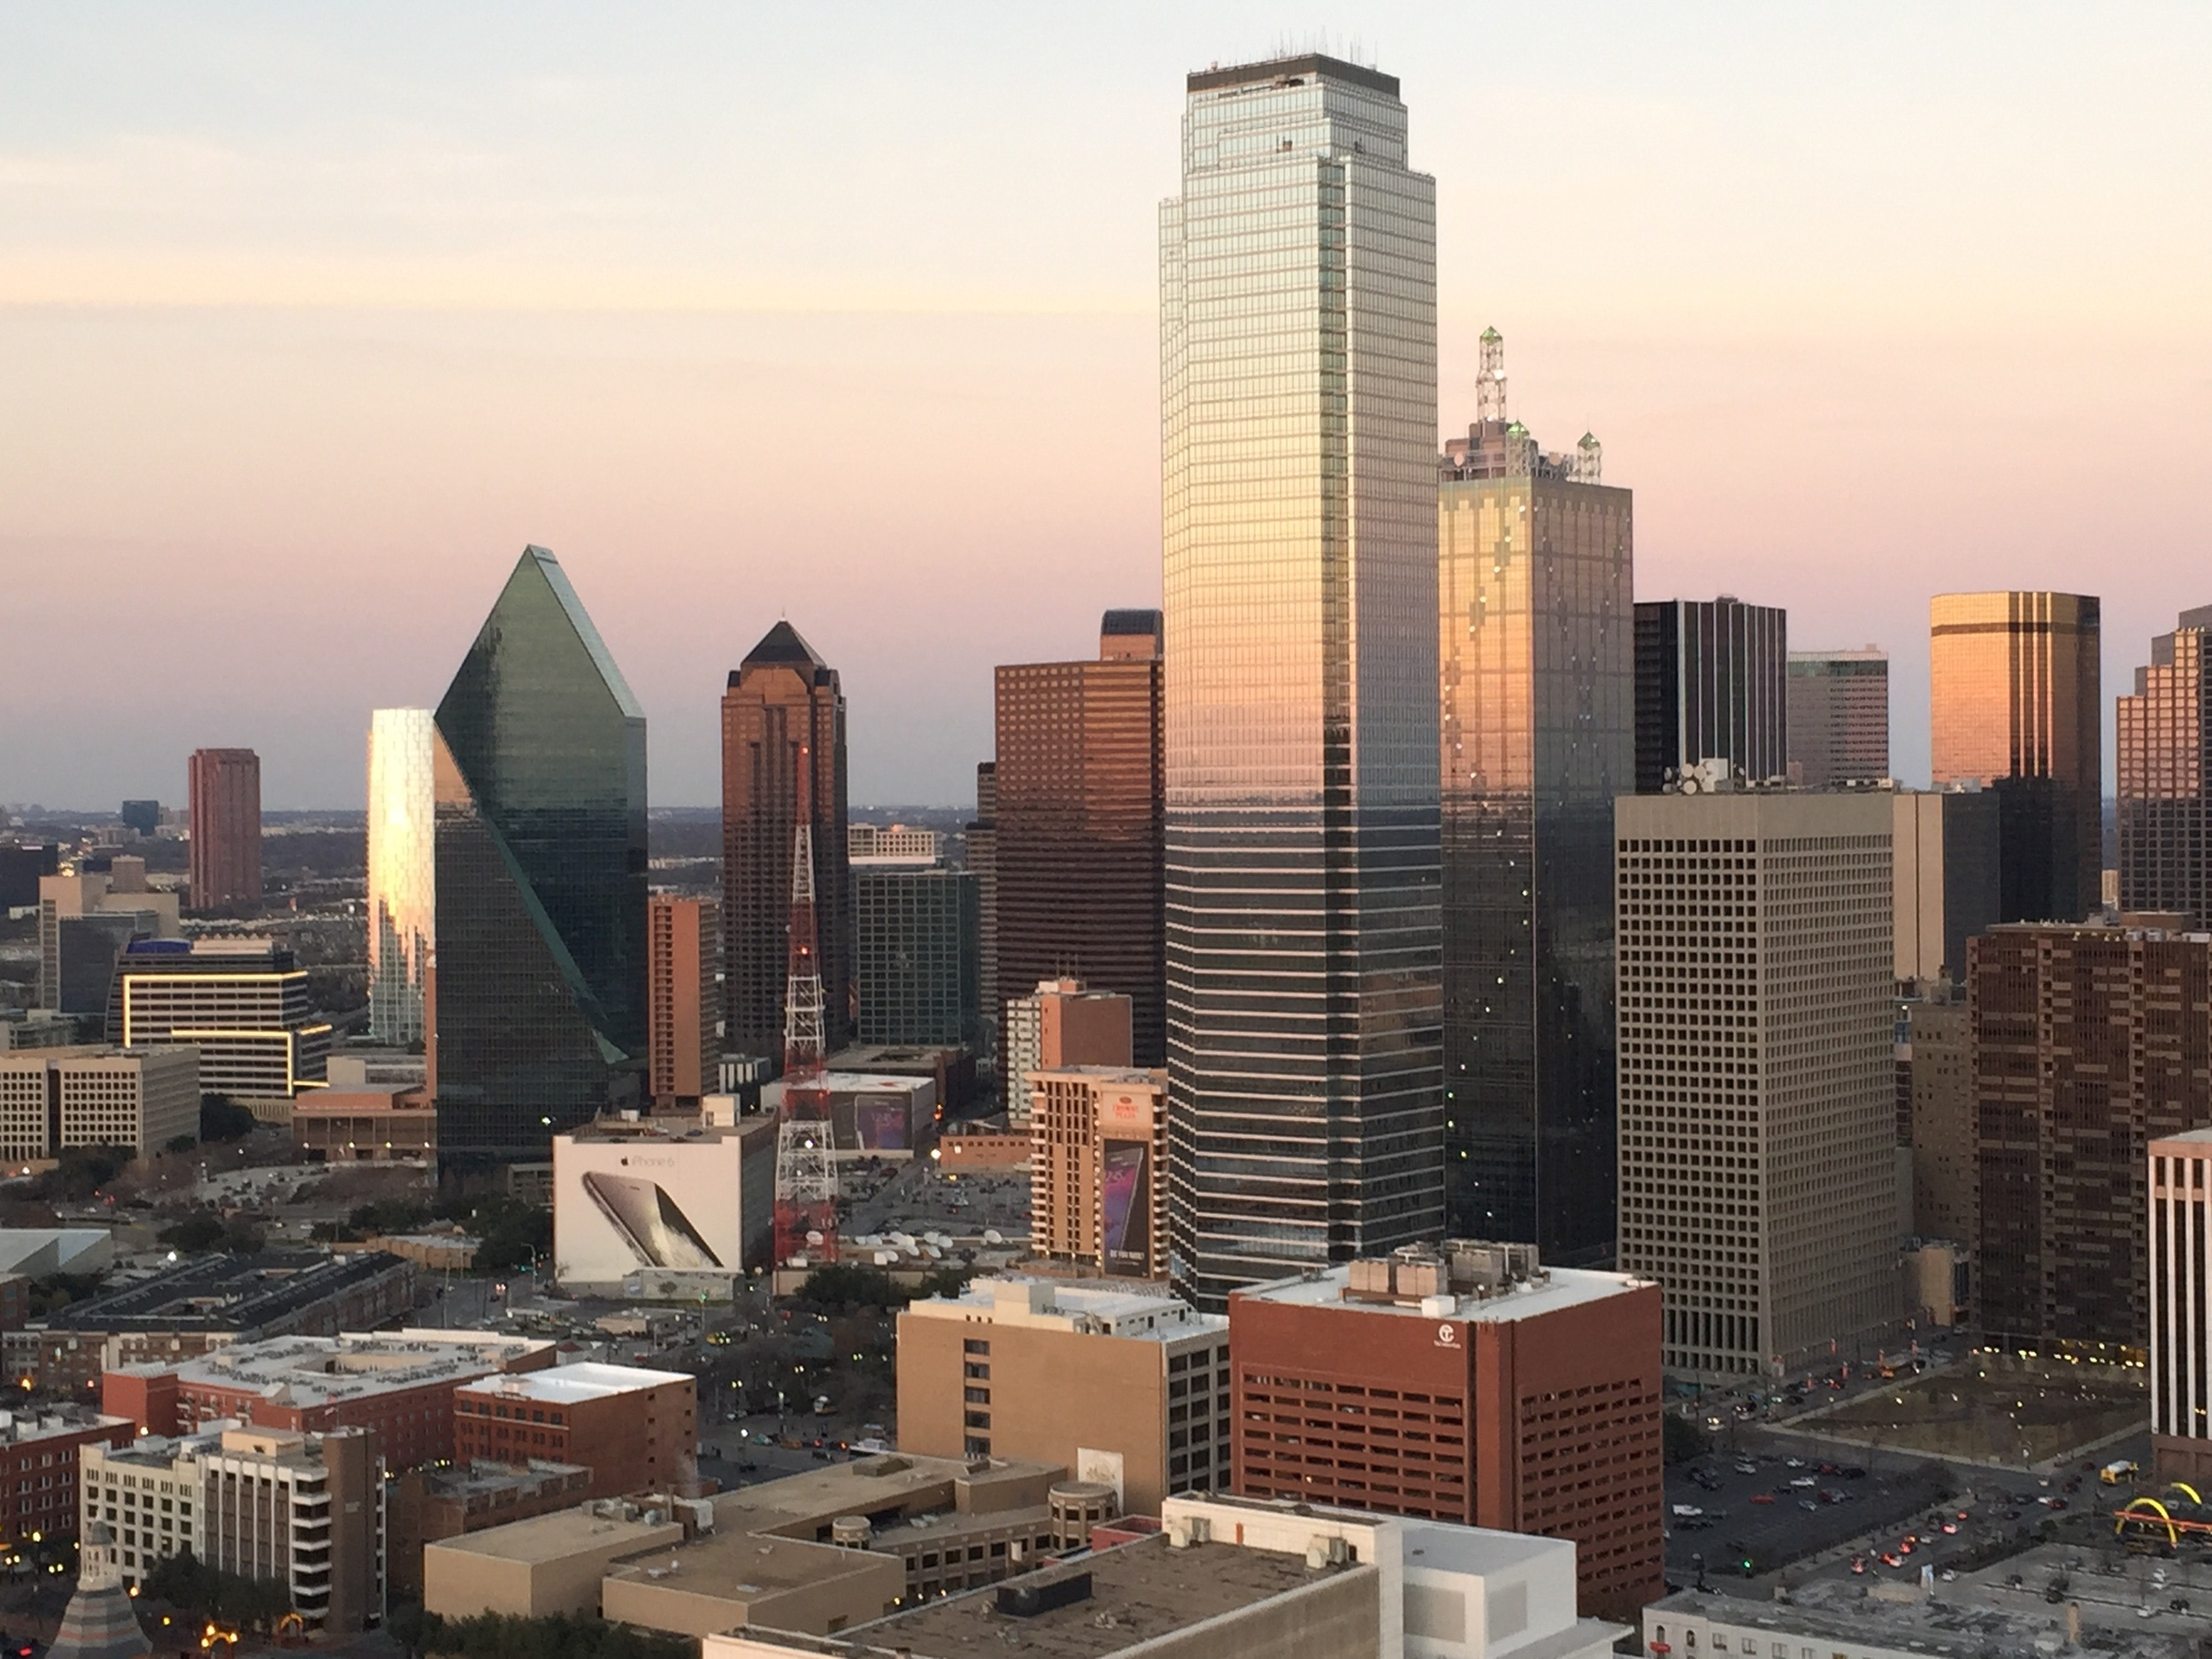 The view from Reunion Tower